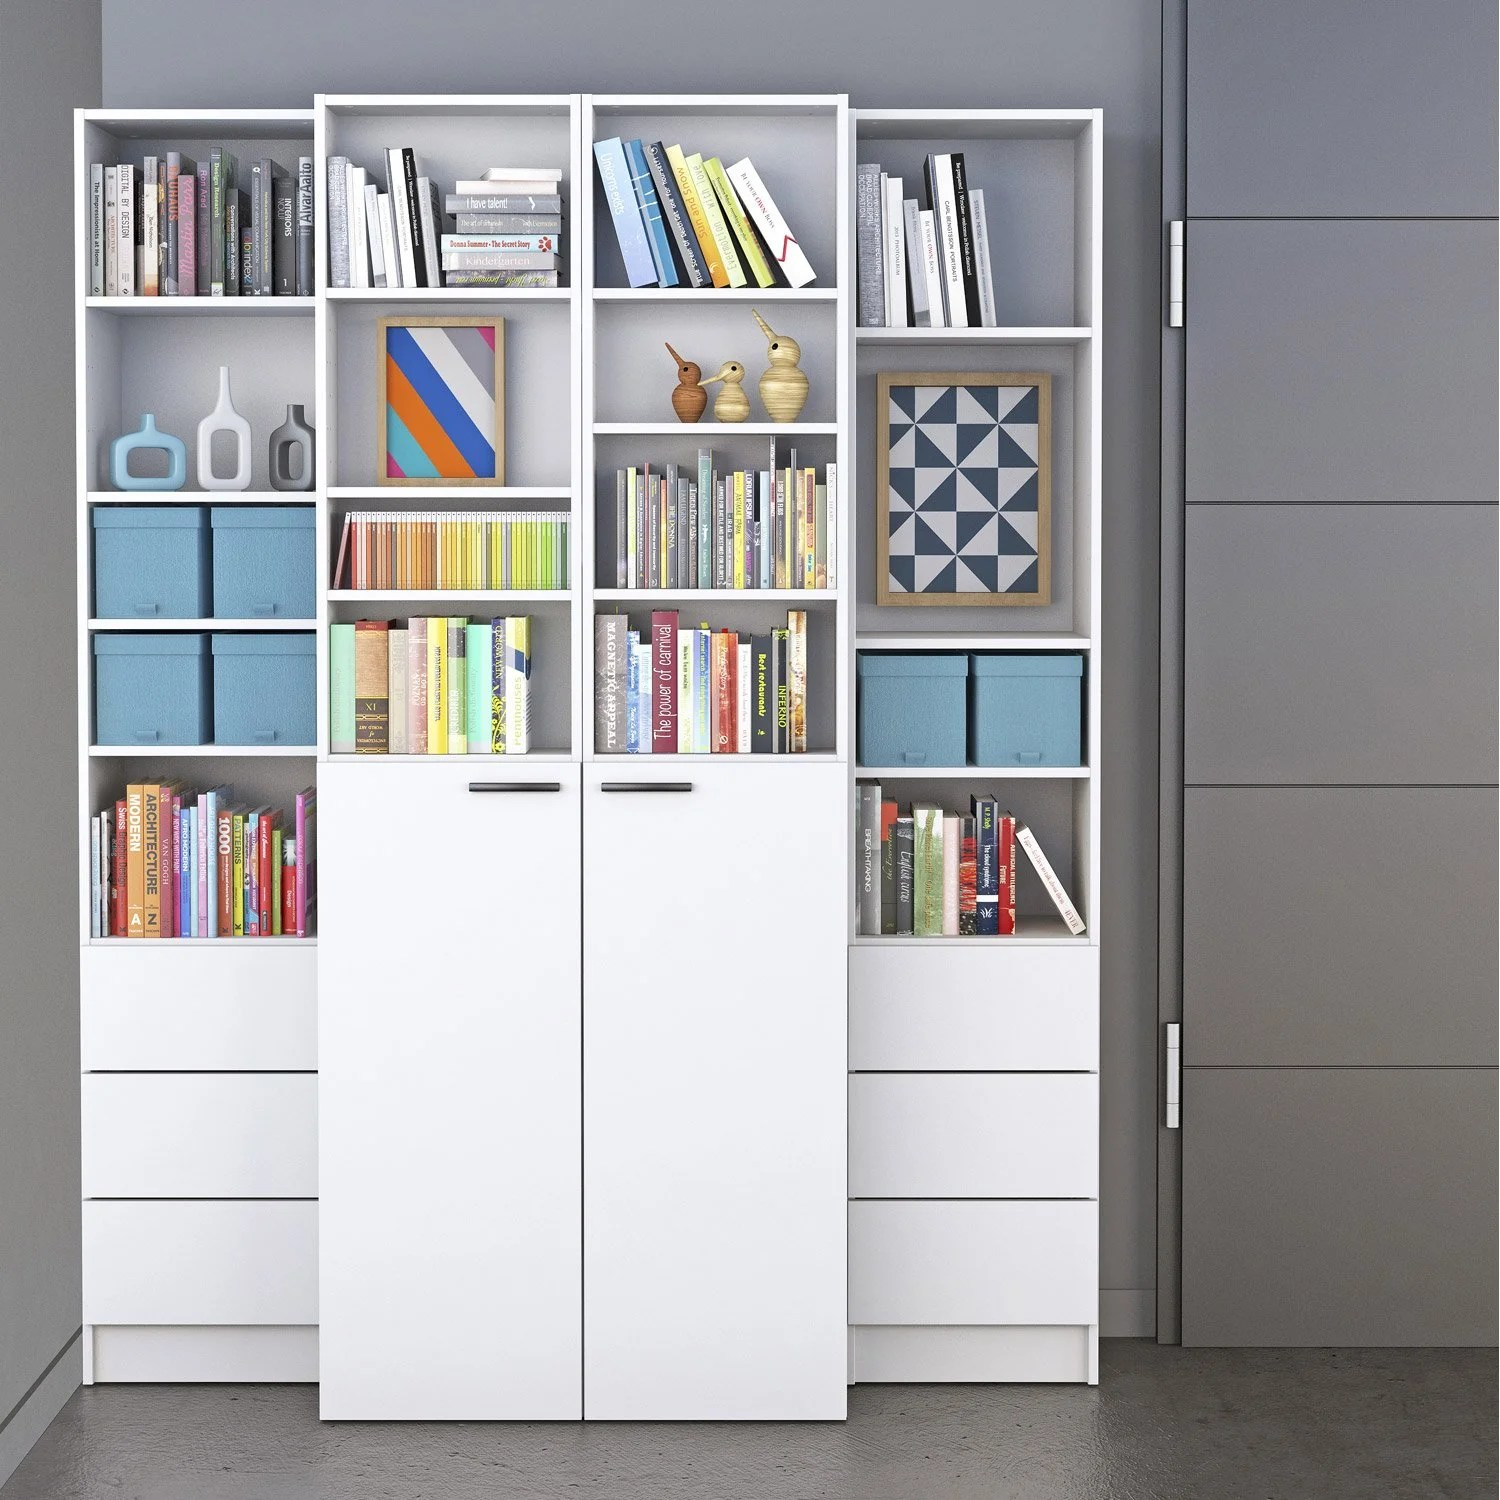 Leroy Merlin Spaceo Porte Bibliothèque Spaceo Home Blanc Leroy Merlin